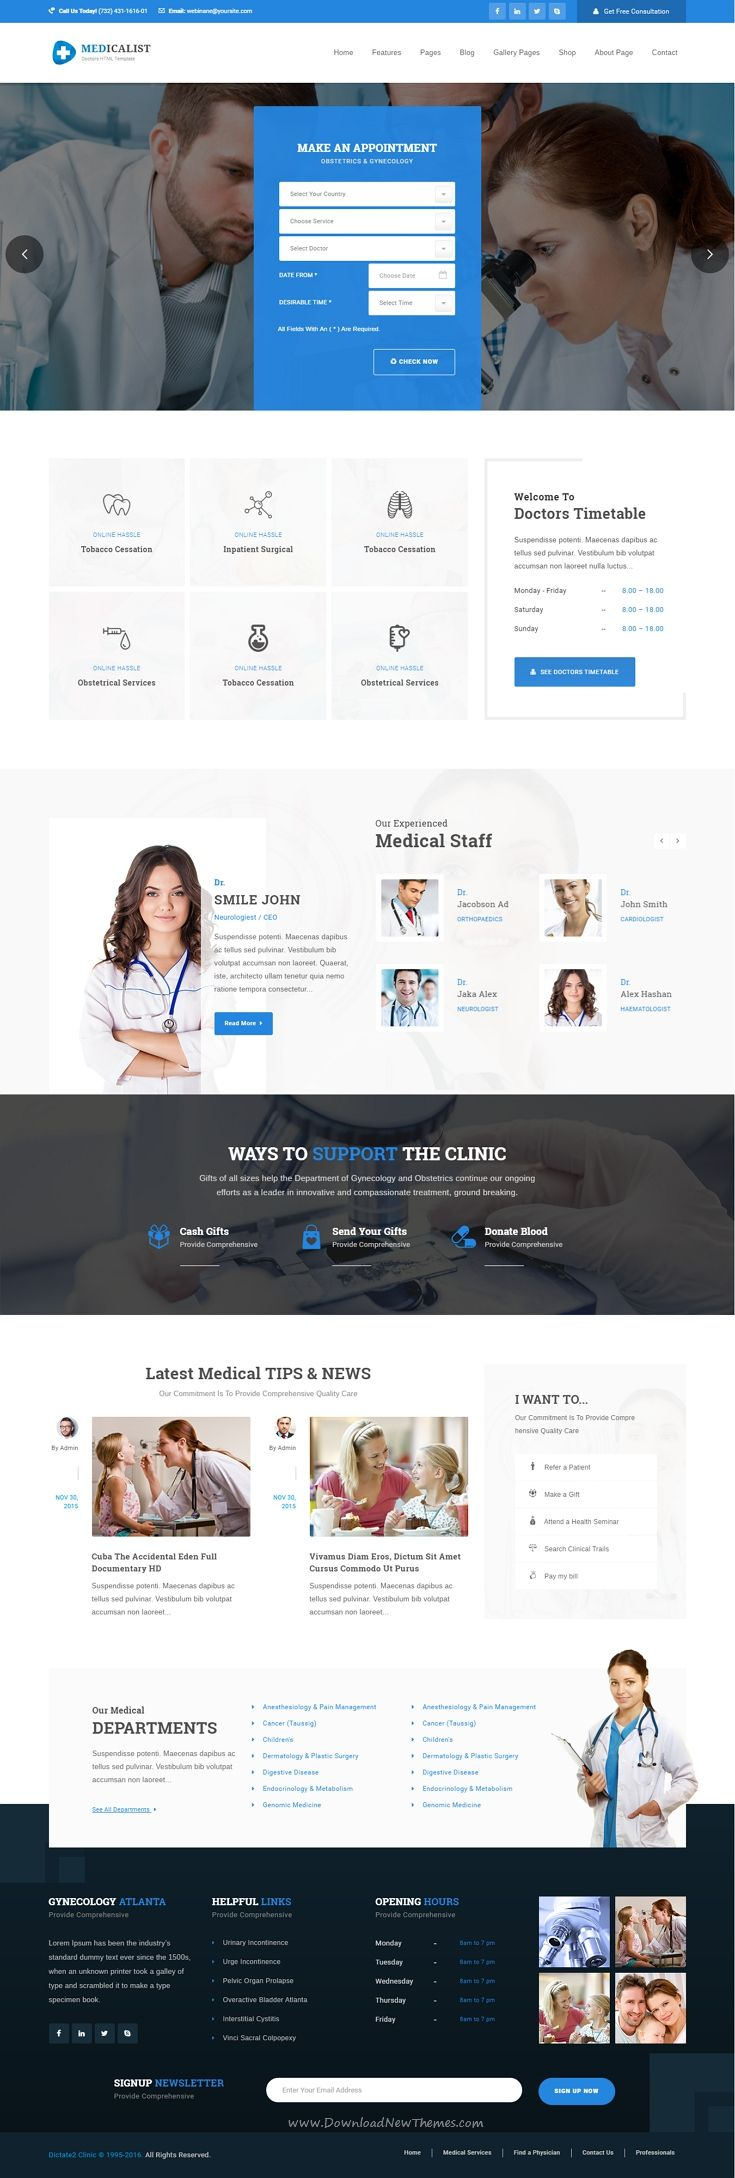 Medicalist - A Responsive HTML Bootstrap Template for Medical, Doctors, Dentists, Clinics and #Hospitals #Website.